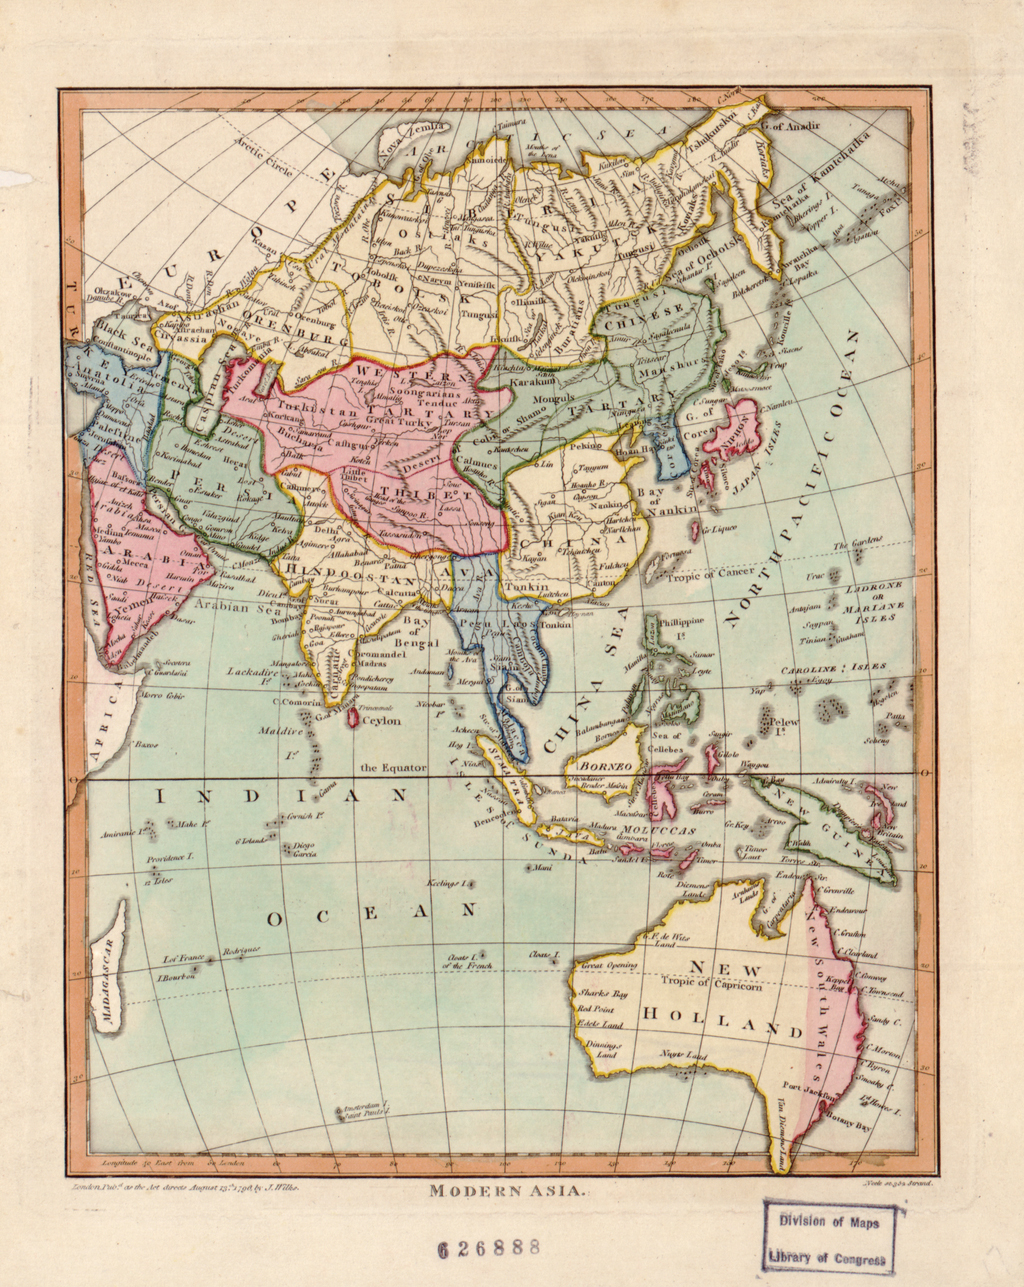 """John Wilkes was a London publisher best known for his Encyclopaedia Londinensis; or, universal dictionary of arts, sciences, and literature (1801-28). Wilkes frequently worked with Samuel John Neele, the engraver of this hand-colored map of """"modern Asia."""" The map reflects late 18th-century European geographic conceptions and terminology. India is referred to as """"Hindoostan,"""" while much of the interior is shown as comprised of """"Western Tartary"""" and """"Chinese Tartary."""" """"Tartary"""" was a designation applied by Europeans to those parts of Asia inhabited by nomadic Turkic and Mongol peoples. This map shows Tartary as stretching from the Caspian Sea to the Pacific Ocean."""